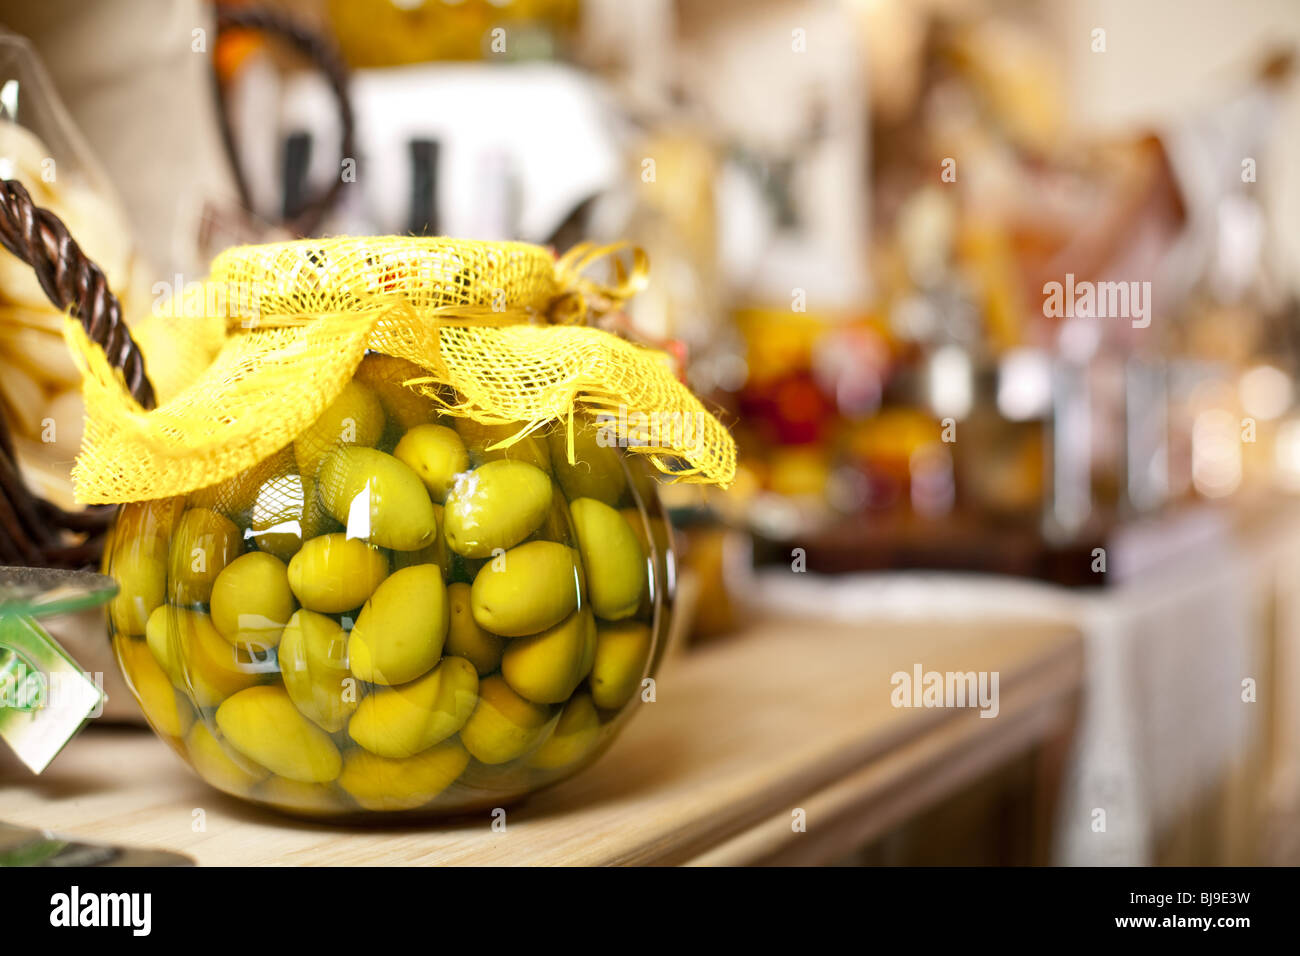 glass jar with green olives - Stock Image